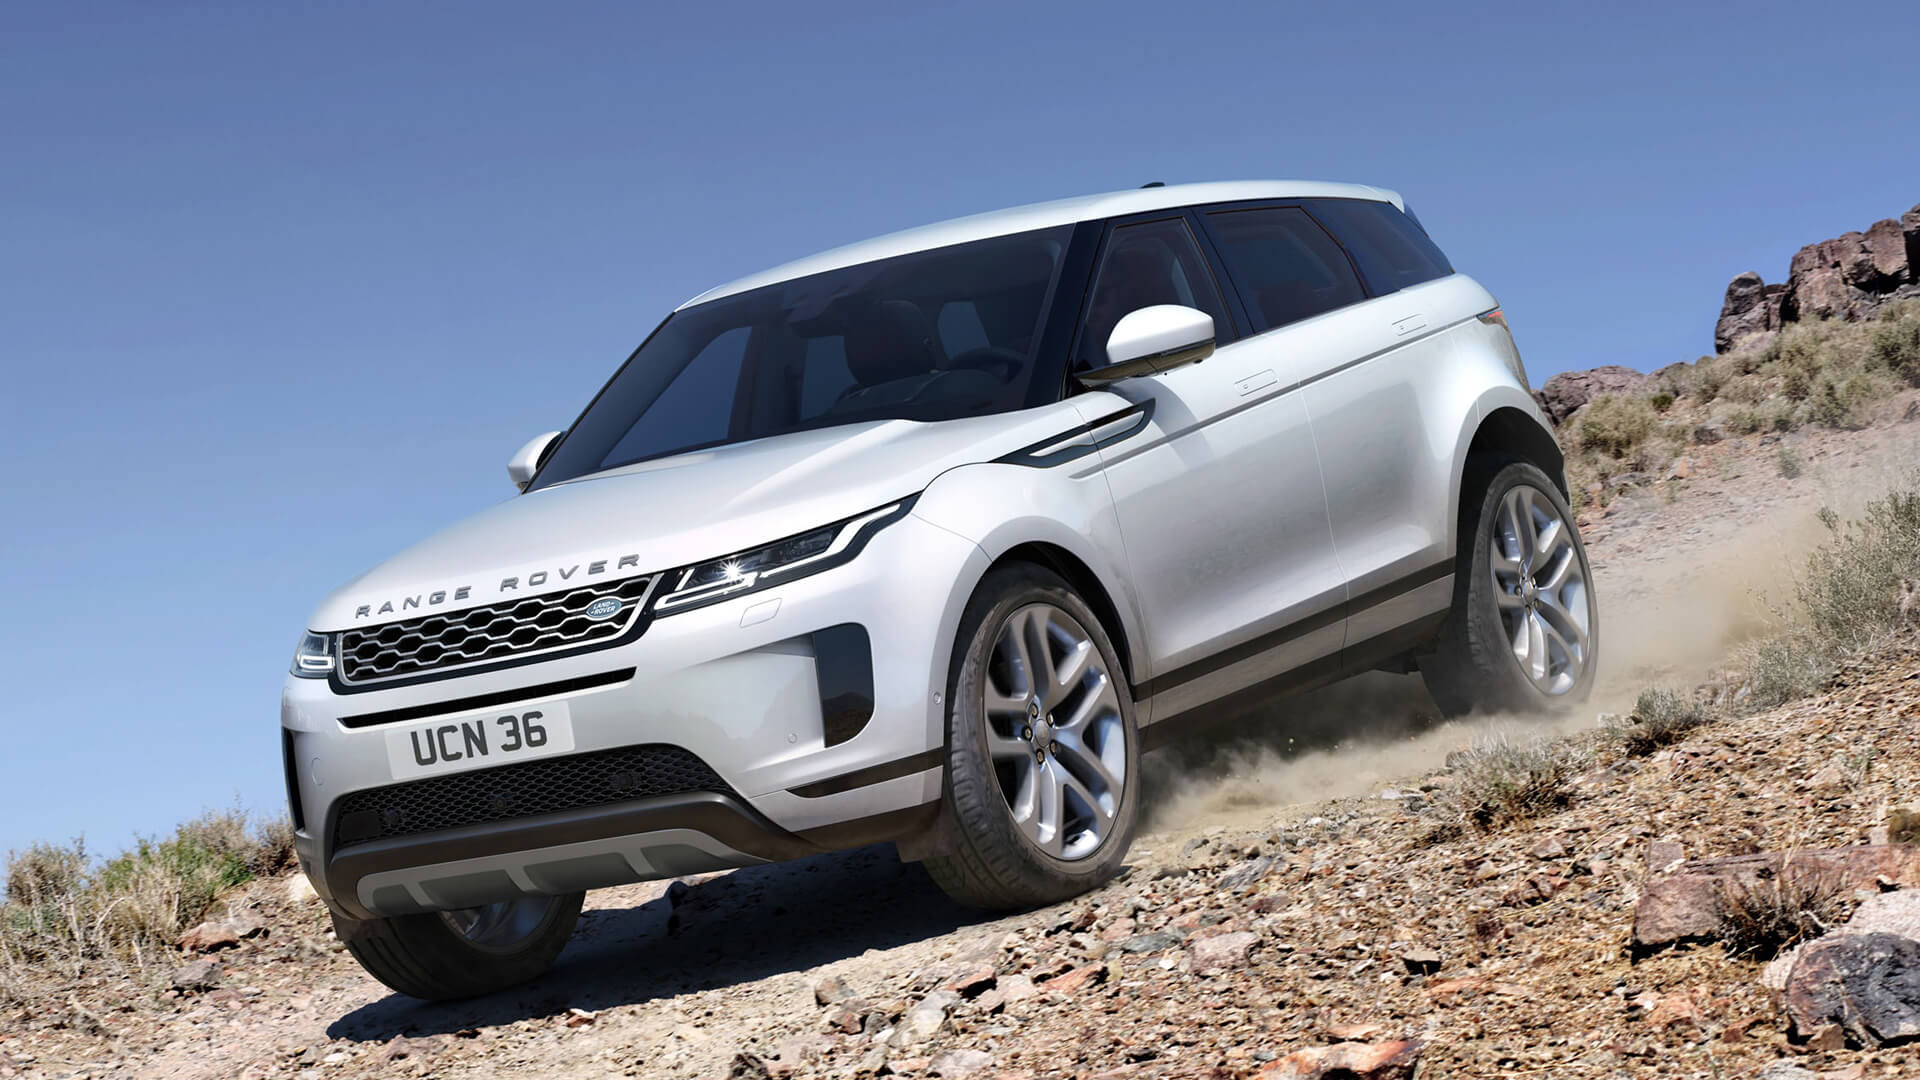 Land Rover >> Land Rover Unveils the New Tech-Laden Range Rover Evoque SUV